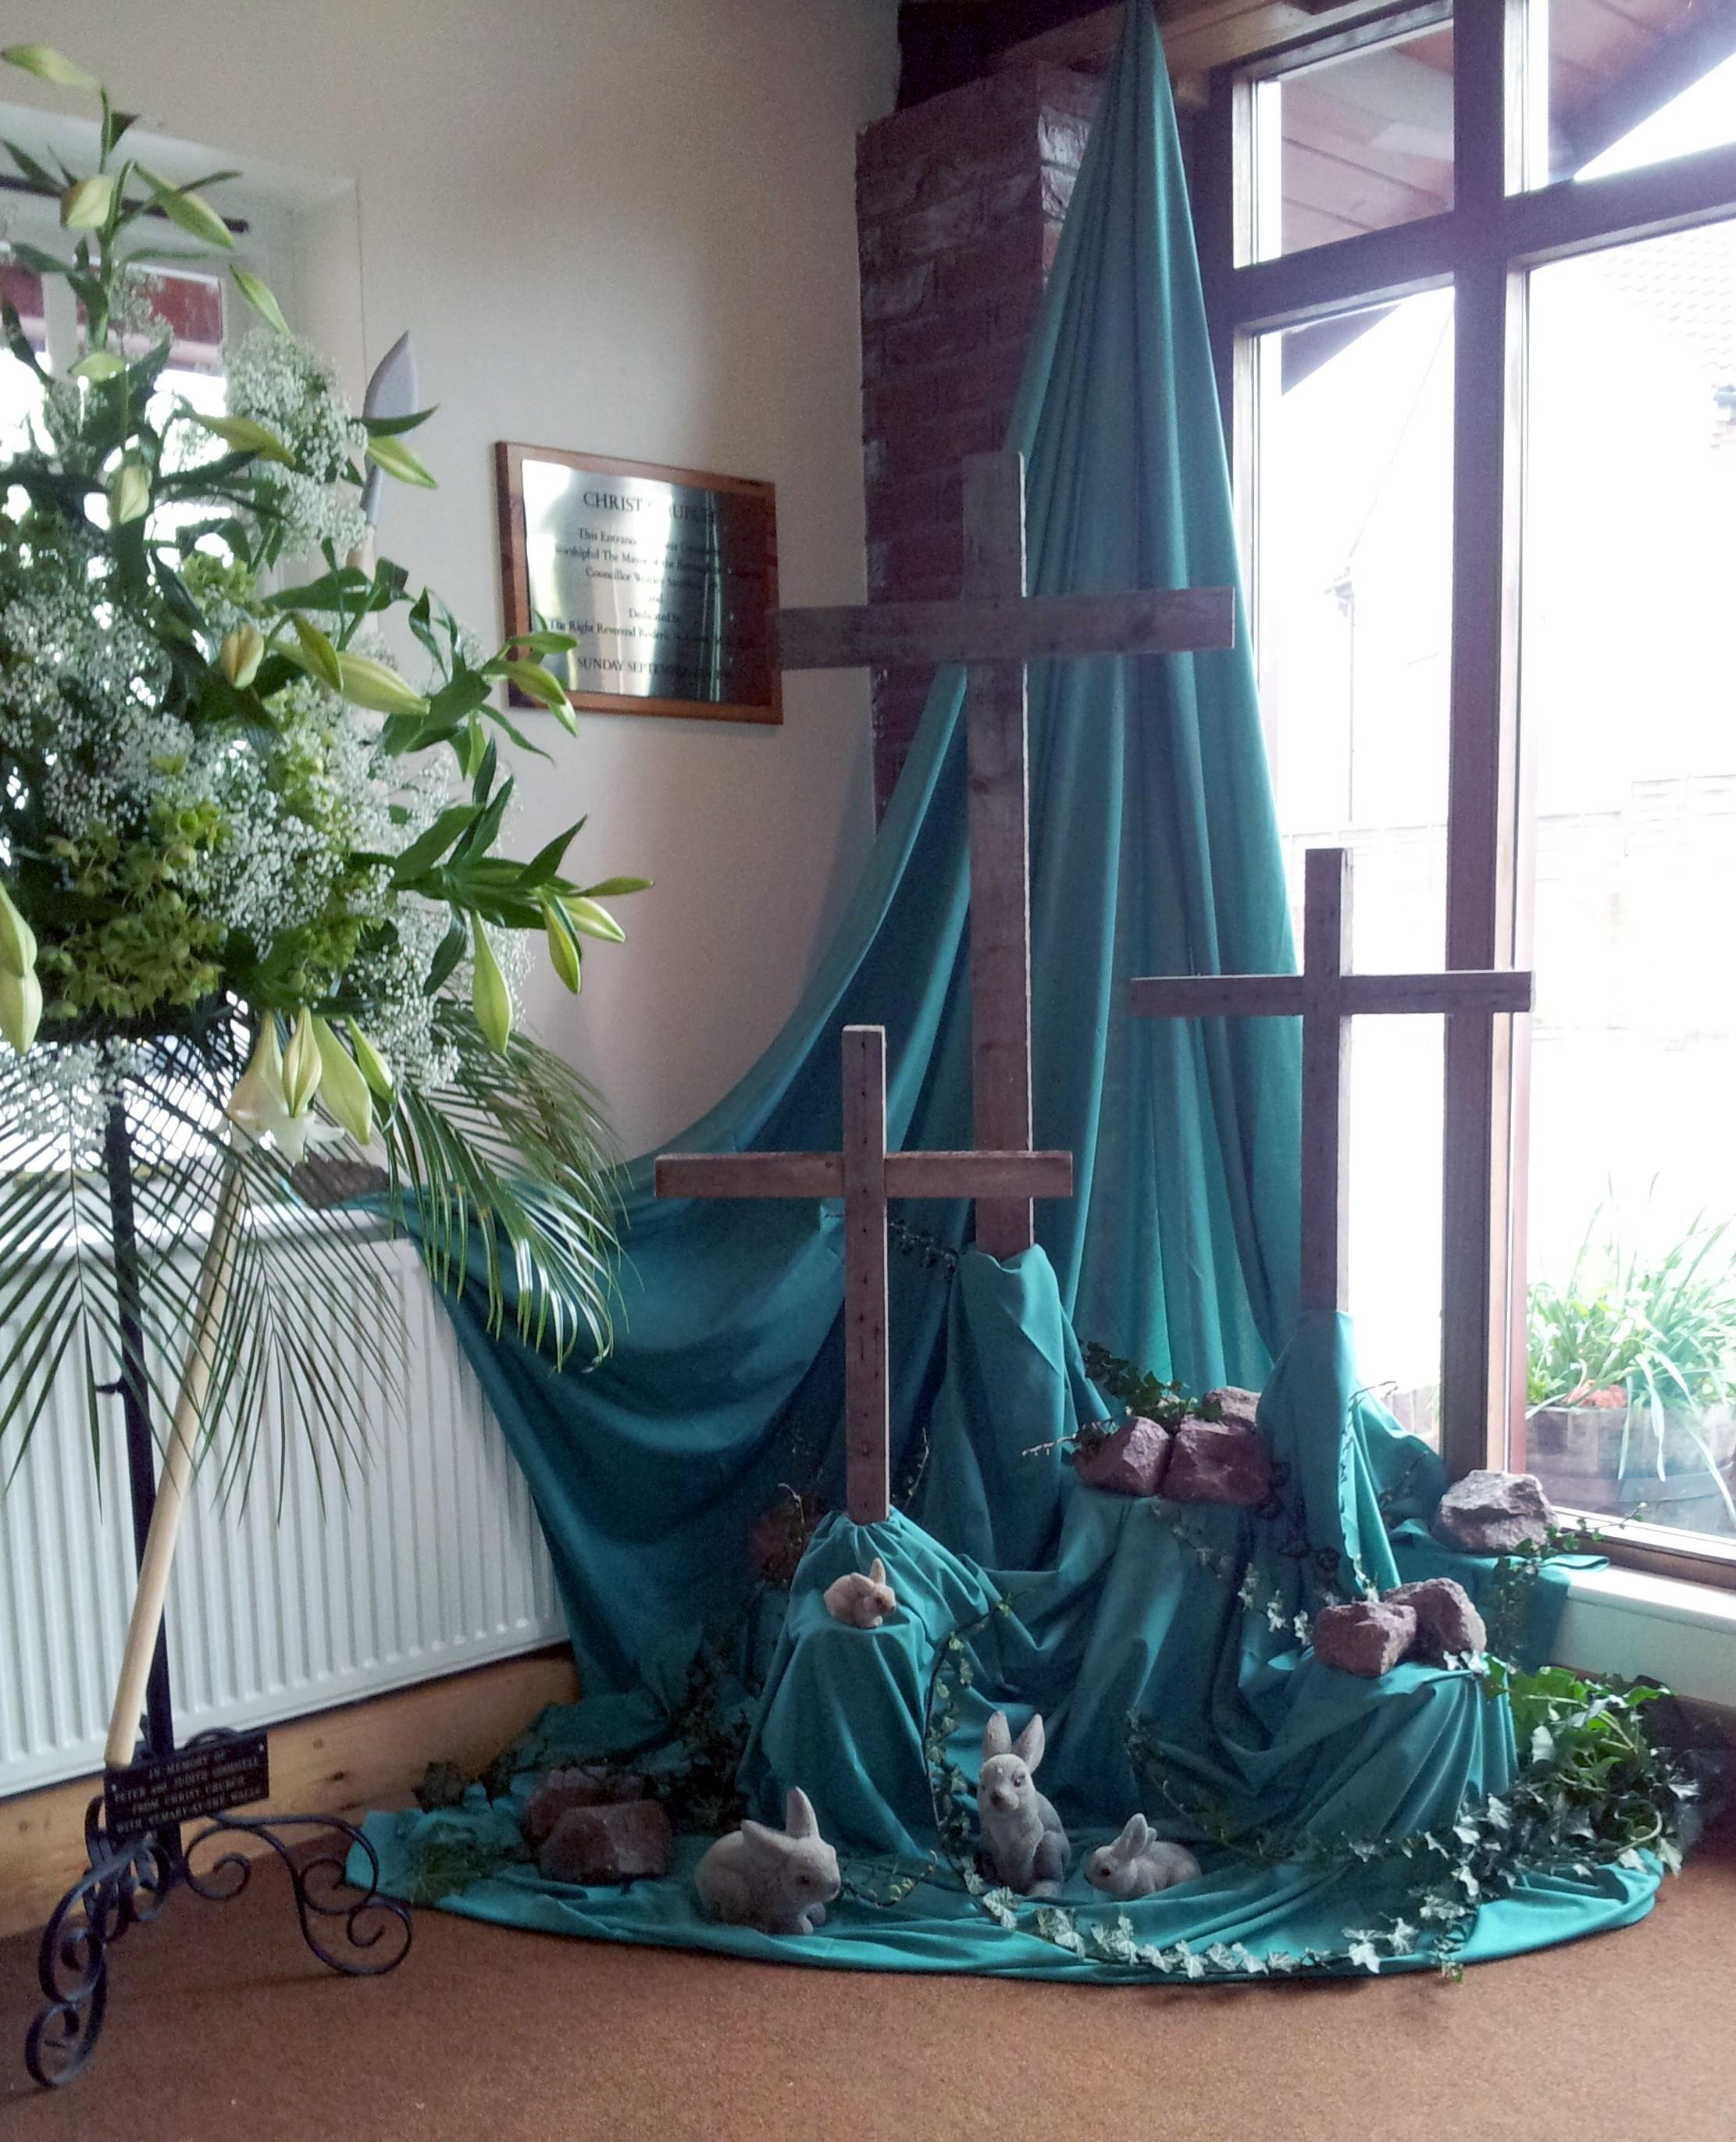 Church Table Decorations Easter Photograph 2223 2743